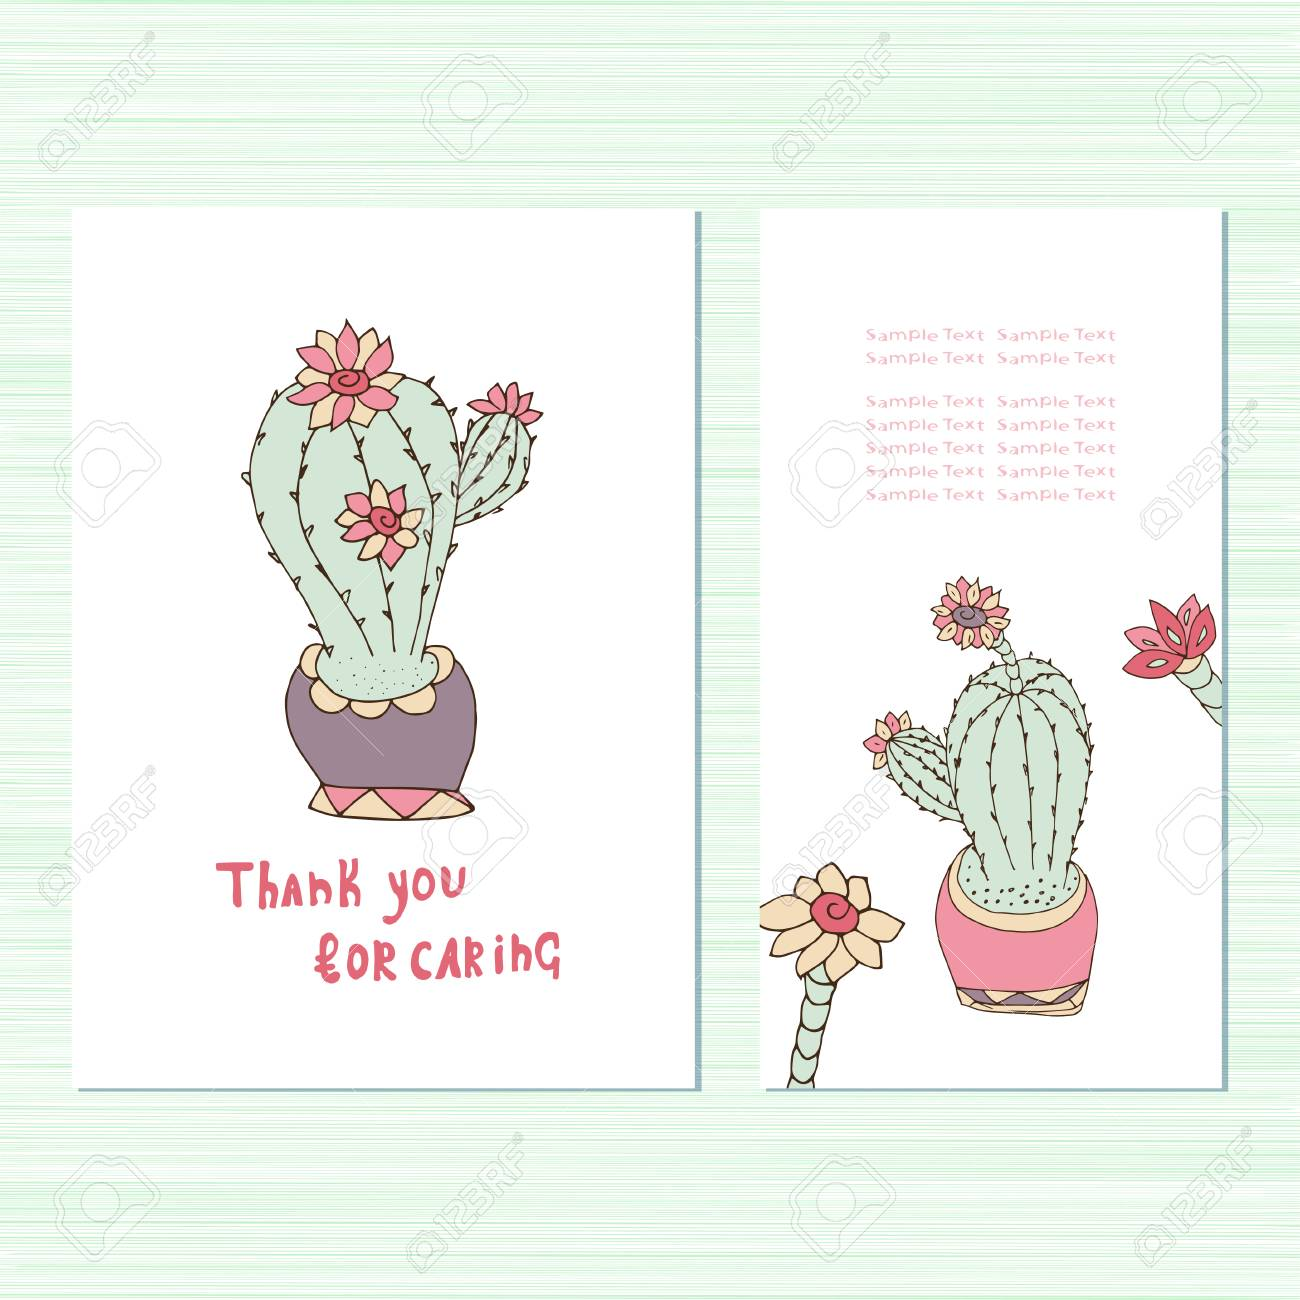 cactus template in doodle sketch style royalty free cliparts